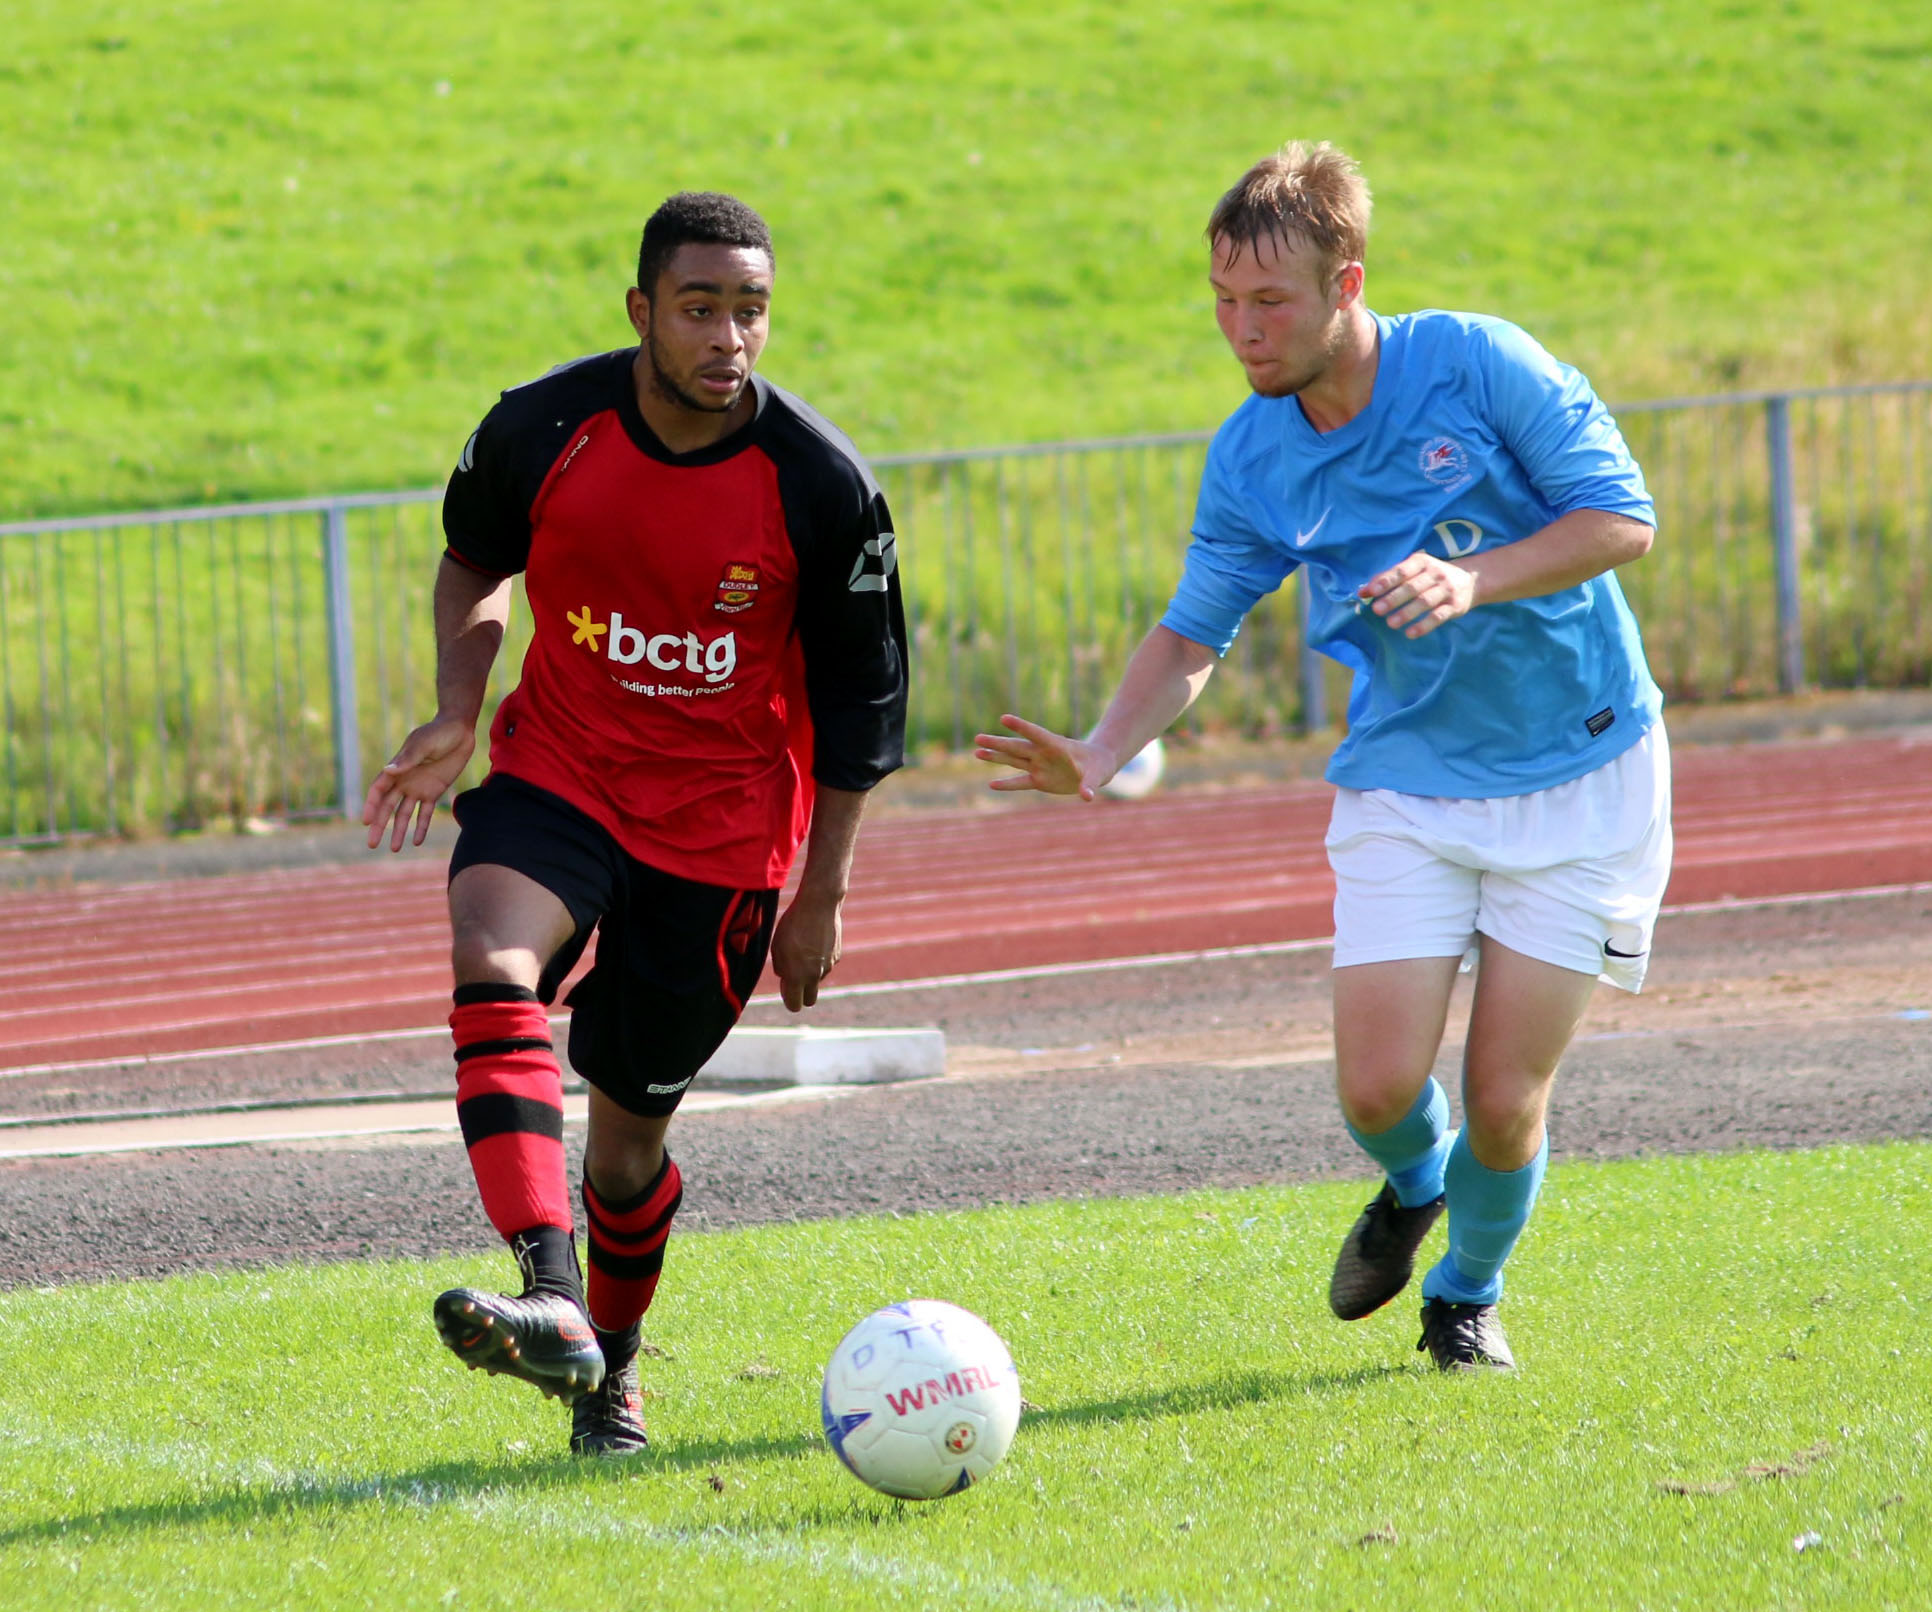 Robins boss frustrated as rain and badgers postpone Dudley derby